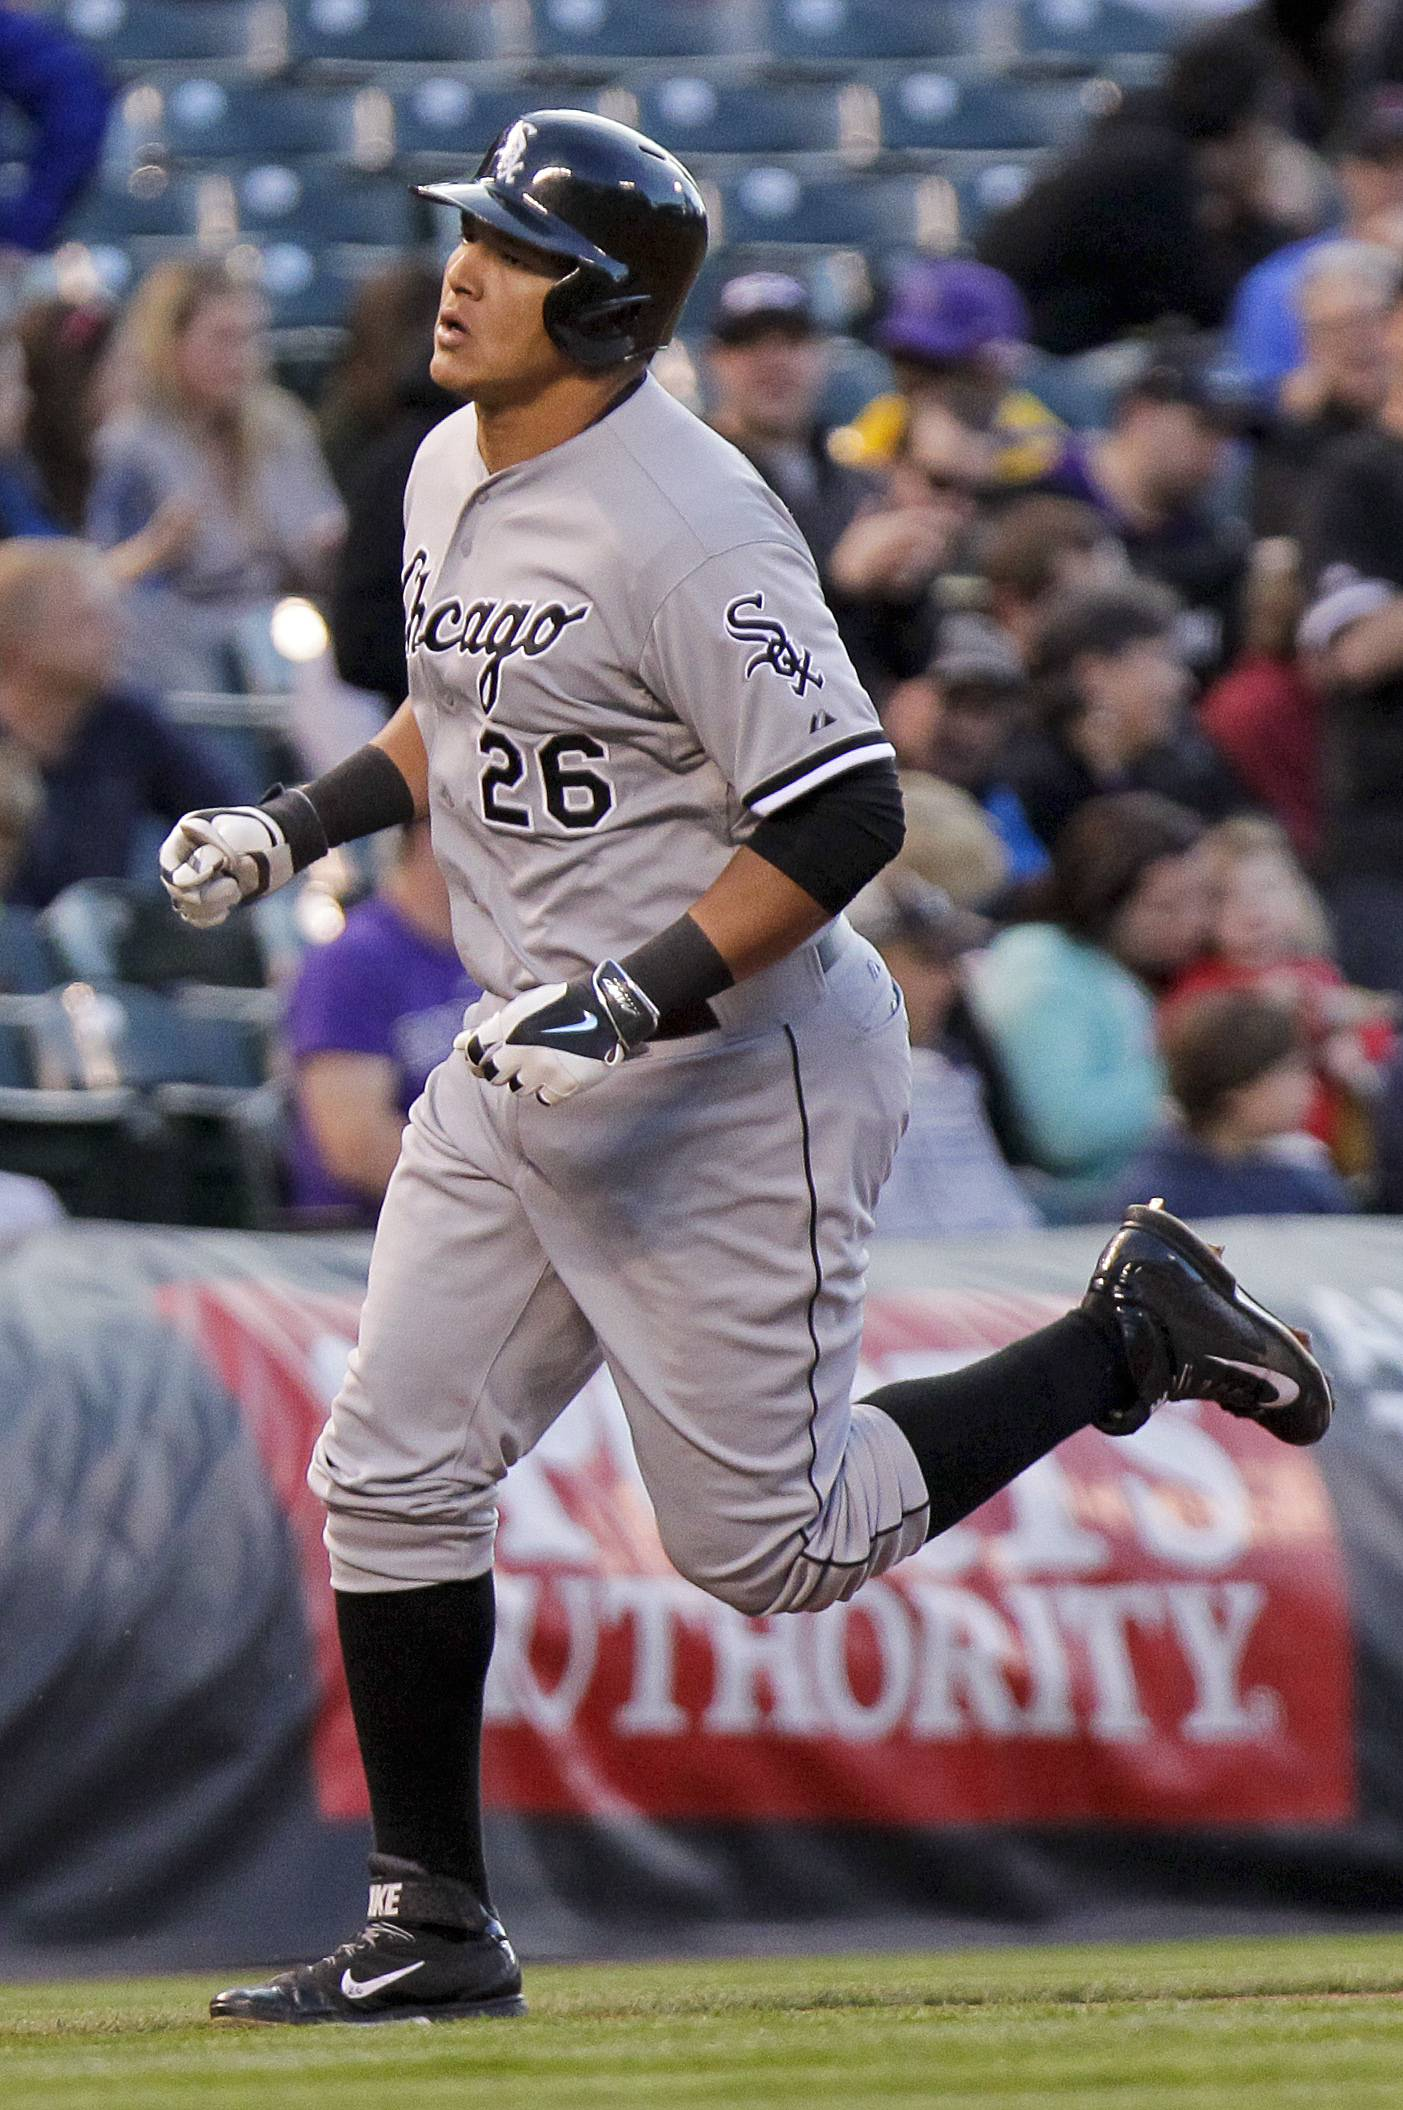 White Sox outfield Avisail Garcia (26) has hit .340 in 13 games with Class AAA Charlotte in his rehab assignment.